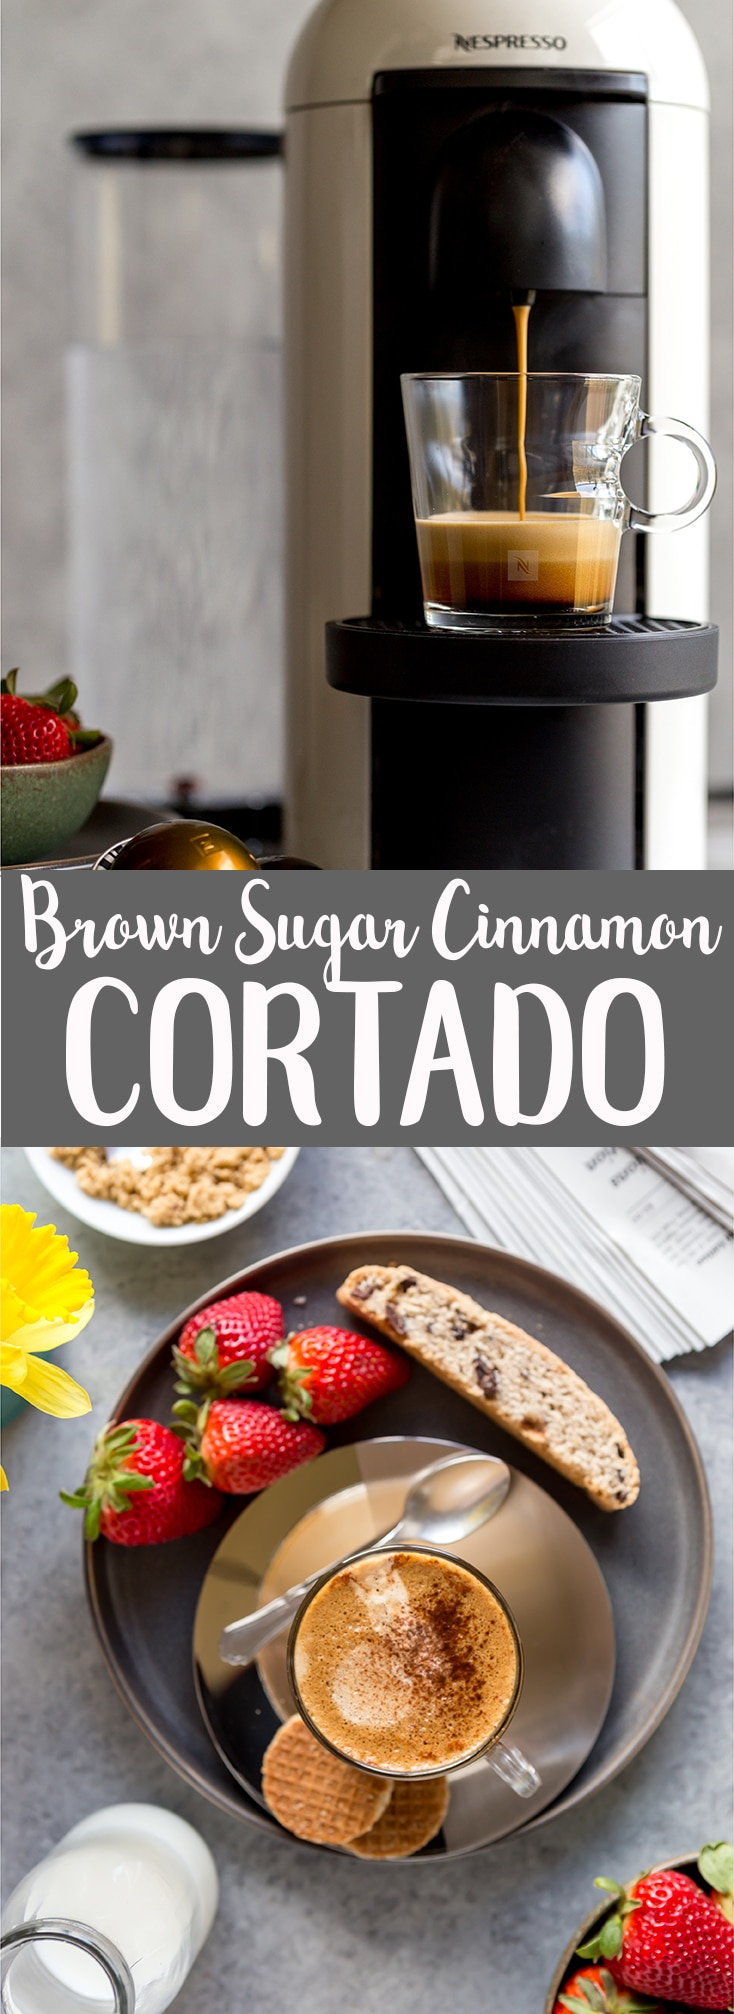 How to make a Brown Sugar Cinnamon Cortado at home | How to make an Irish Mocha at home | How to make a cortado | How to make a Mint Mocha at home | Fancy Coffee Drinks at home